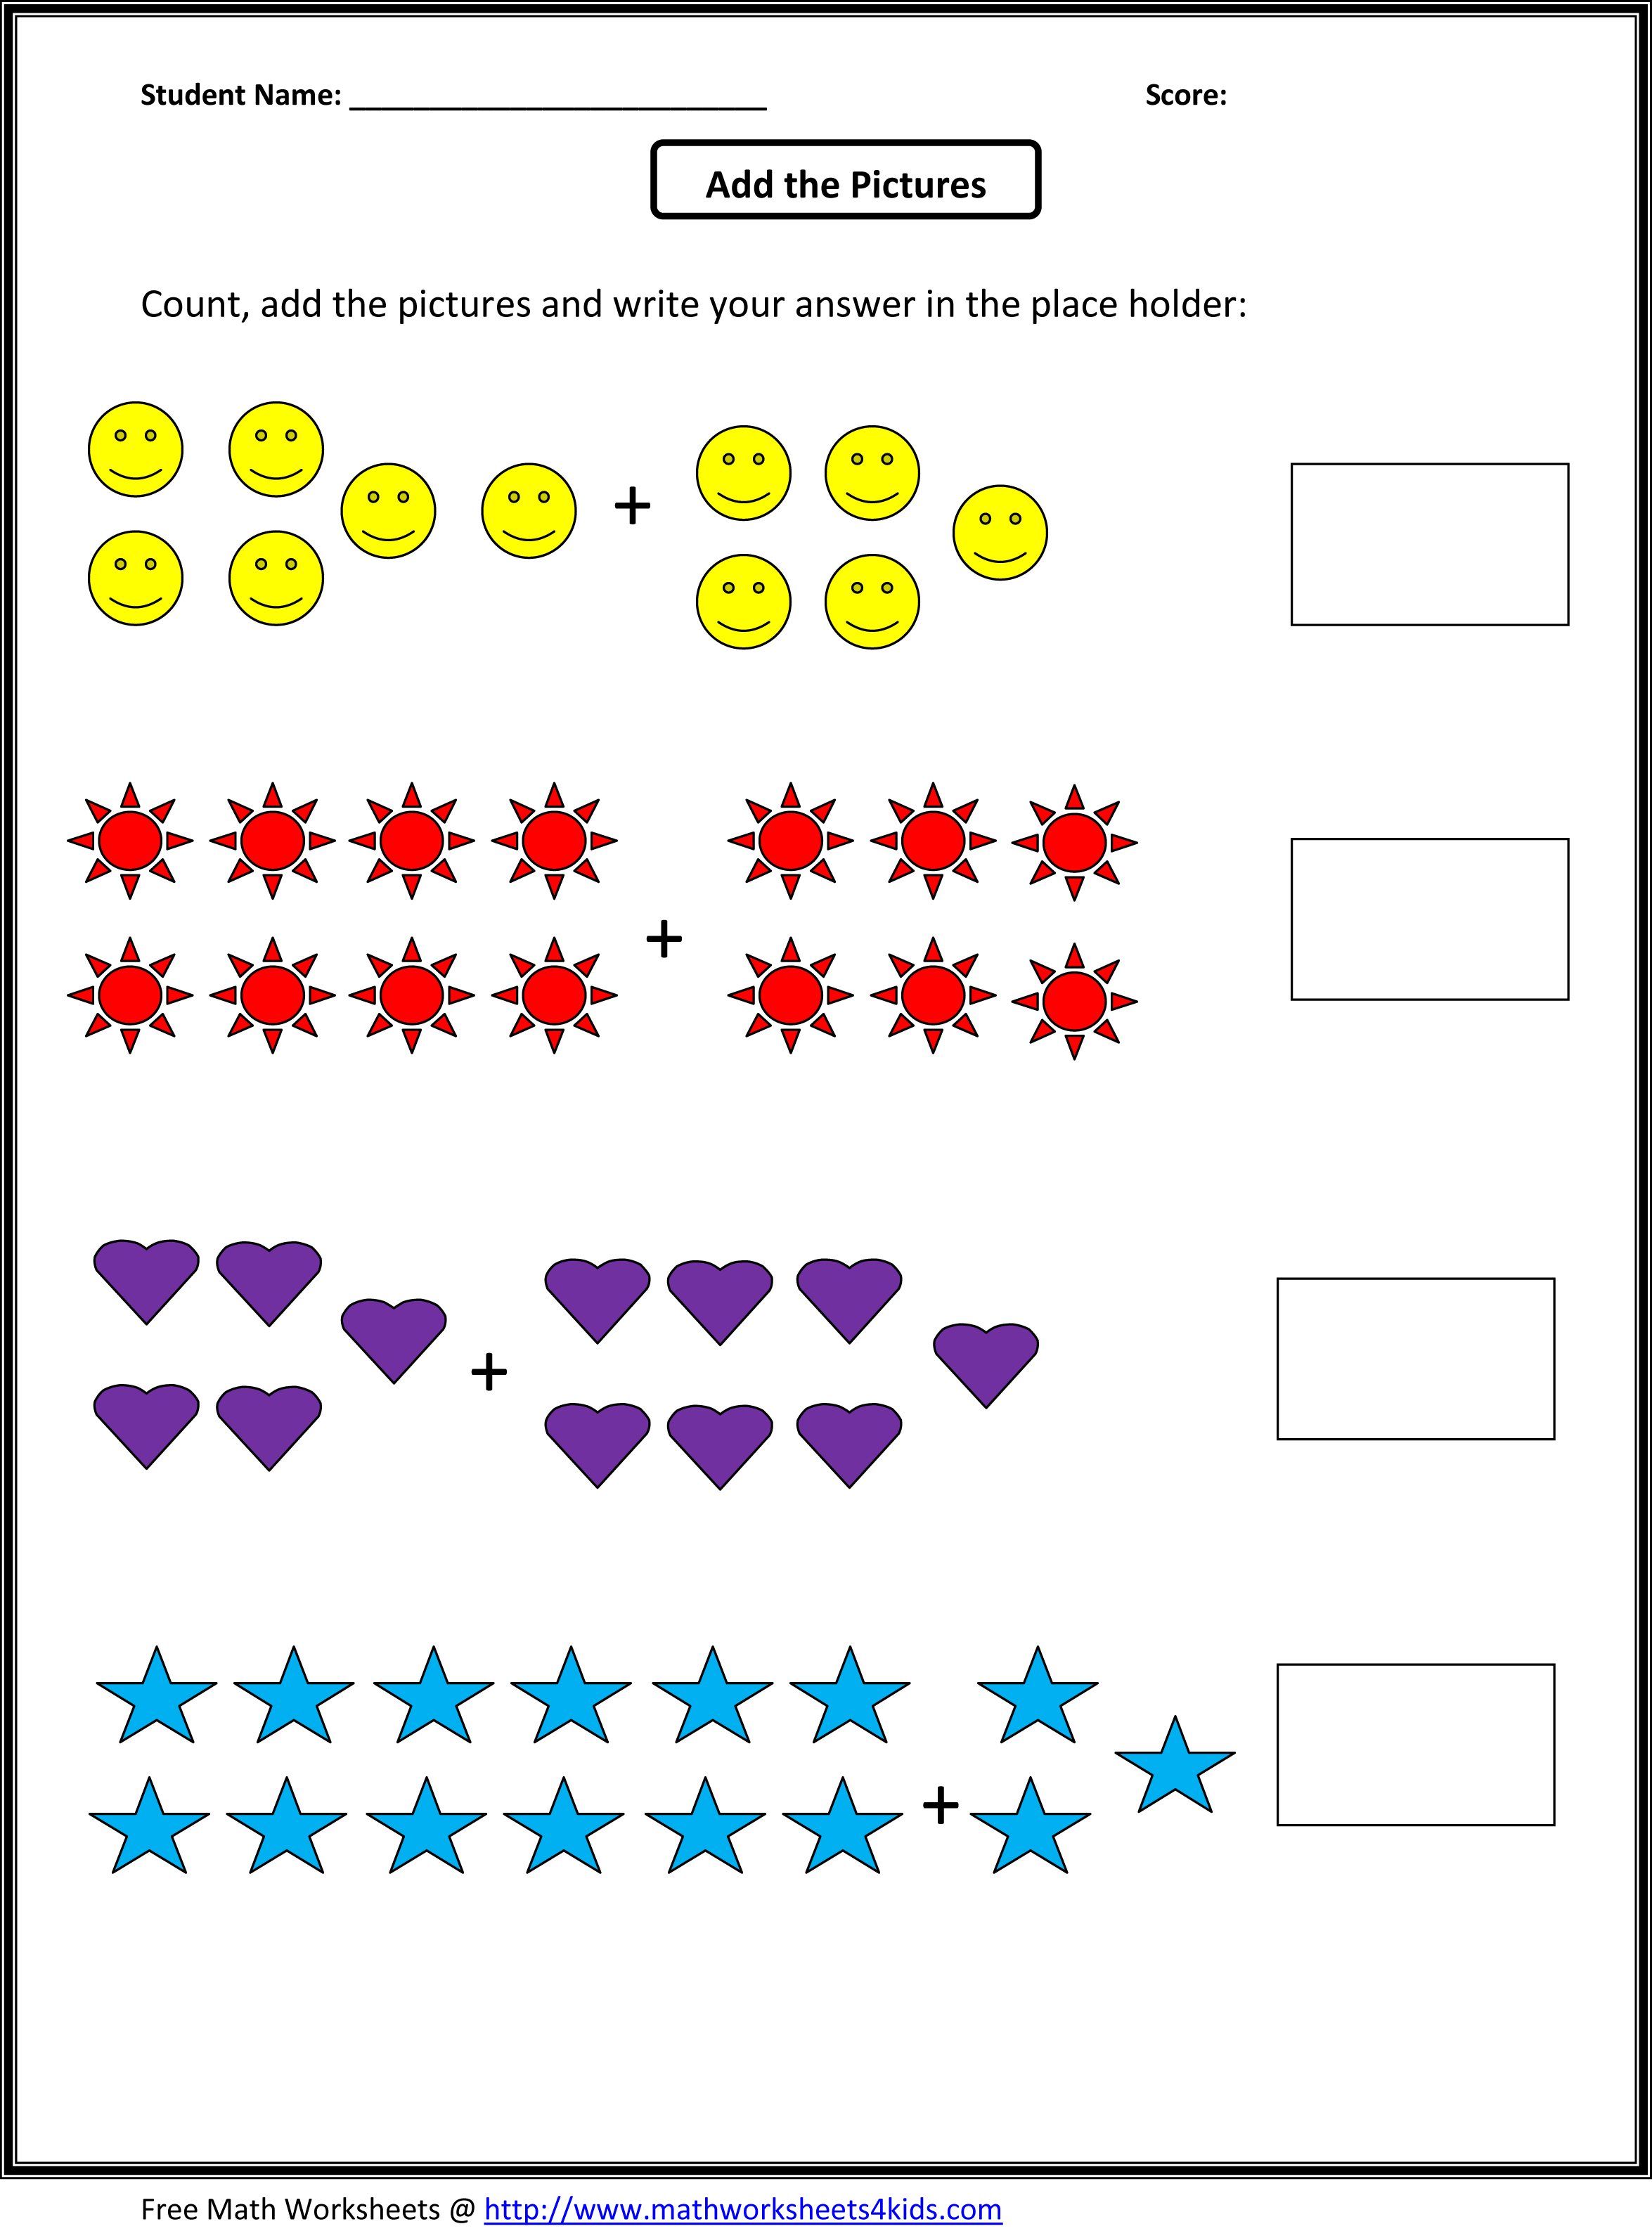 Weirdmailus  Remarkable Grade  Maths Worksheet  Reocurent With Likable Math Worksheets For St Grade Free  Reocurent With Nice Creating Equations From Word Problems Worksheet Also Diagramming Prepositional Phrases Worksheet In Addition Root Words And Suffixes Worksheets And Food Chain And Web Worksheet As Well As Preschool Printable Worksheets Alphabet Additionally Build A Snowman Worksheet From Reocurentcom With Weirdmailus  Likable Grade  Maths Worksheet  Reocurent With Nice Math Worksheets For St Grade Free  Reocurent And Remarkable Creating Equations From Word Problems Worksheet Also Diagramming Prepositional Phrases Worksheet In Addition Root Words And Suffixes Worksheets From Reocurentcom